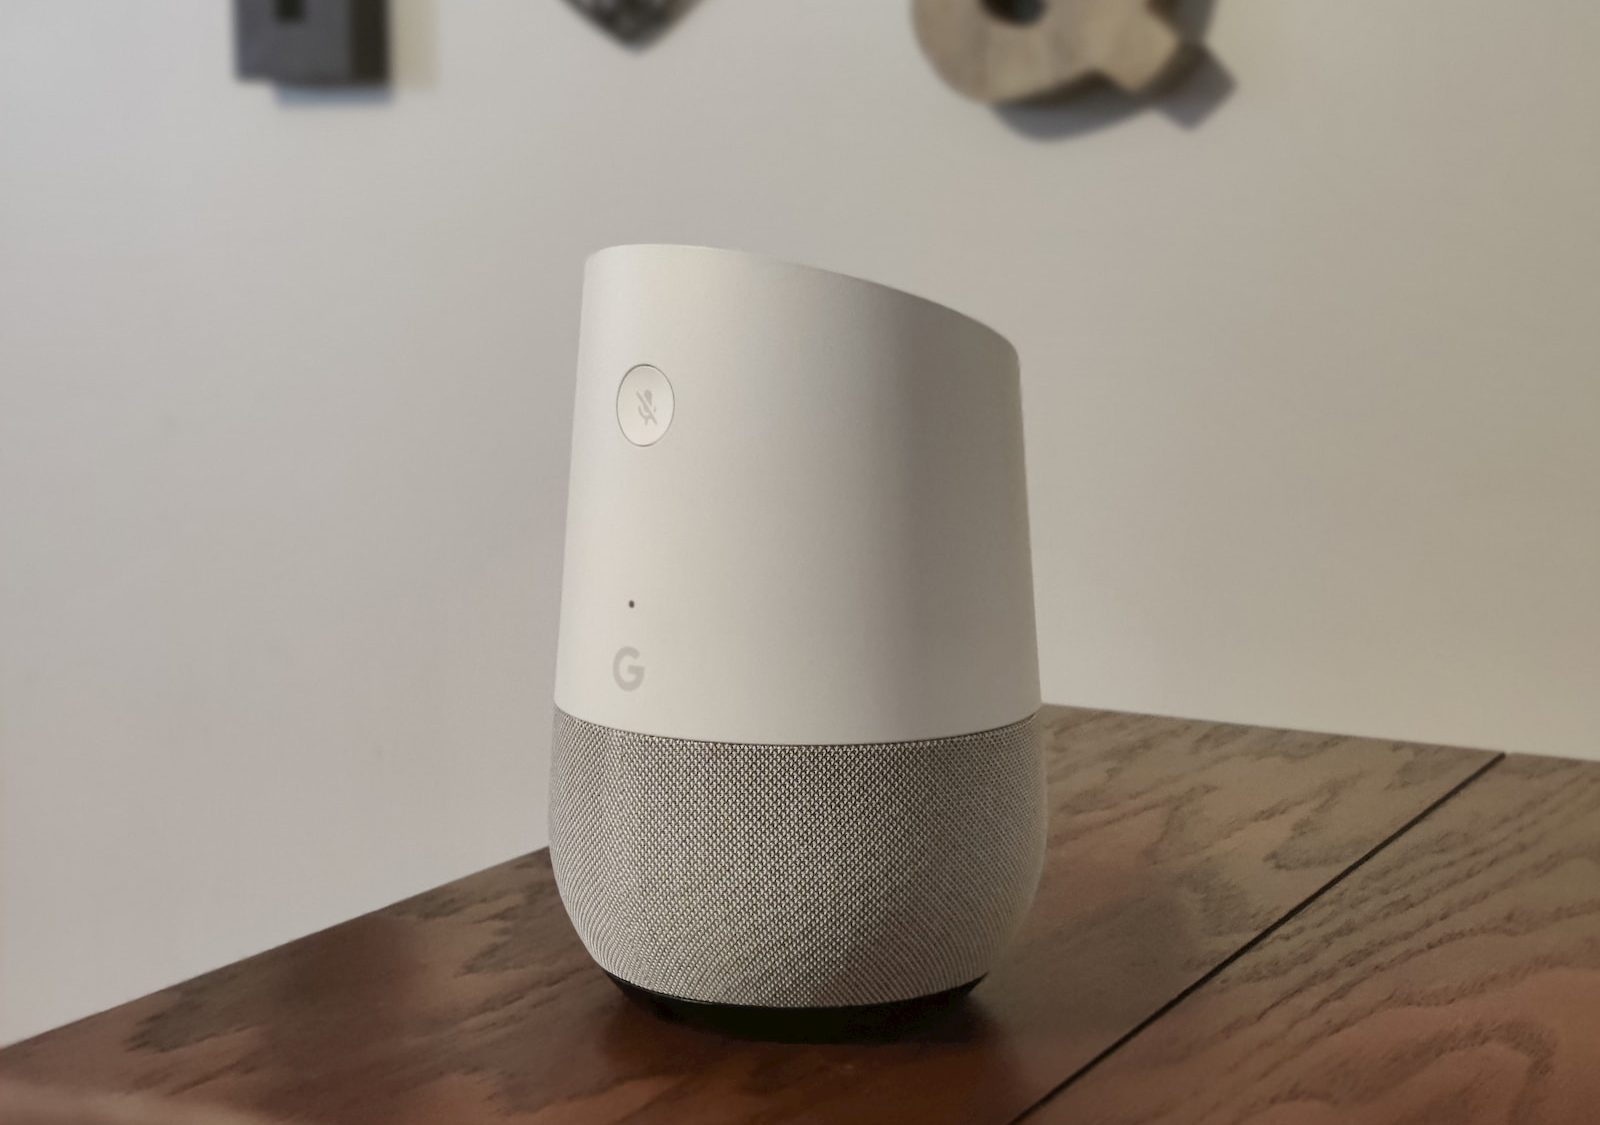 New leak hints at Nest-branded replacement for the original Google Home